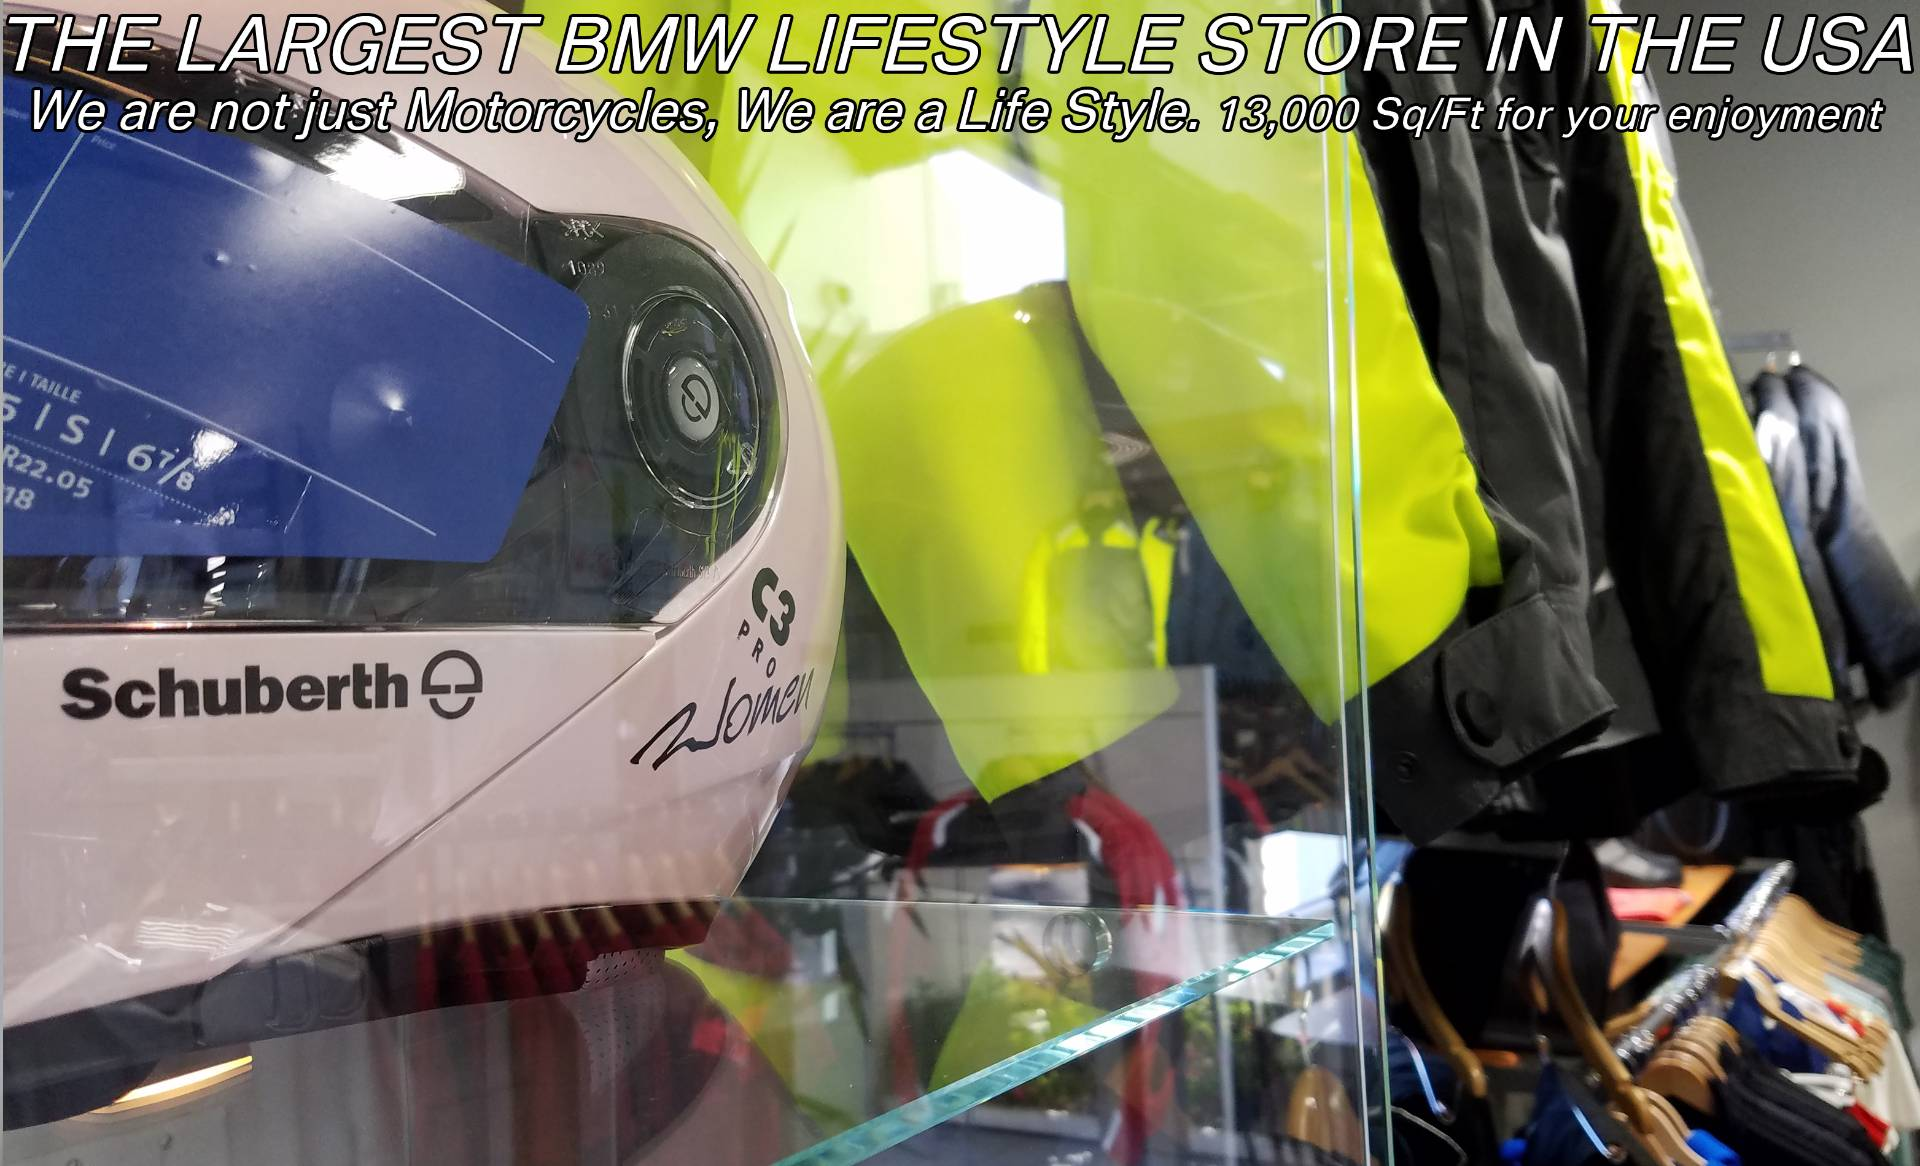 Used 2011 BMW R 1200 GSA For Sale, Pre owned BMW R 1200GSA For Sale, BMW Motorcycle R1200GSA, BMW Motorcycles of Miami, Motorcycles of Miami, Motorcycles Miami - Photo 53